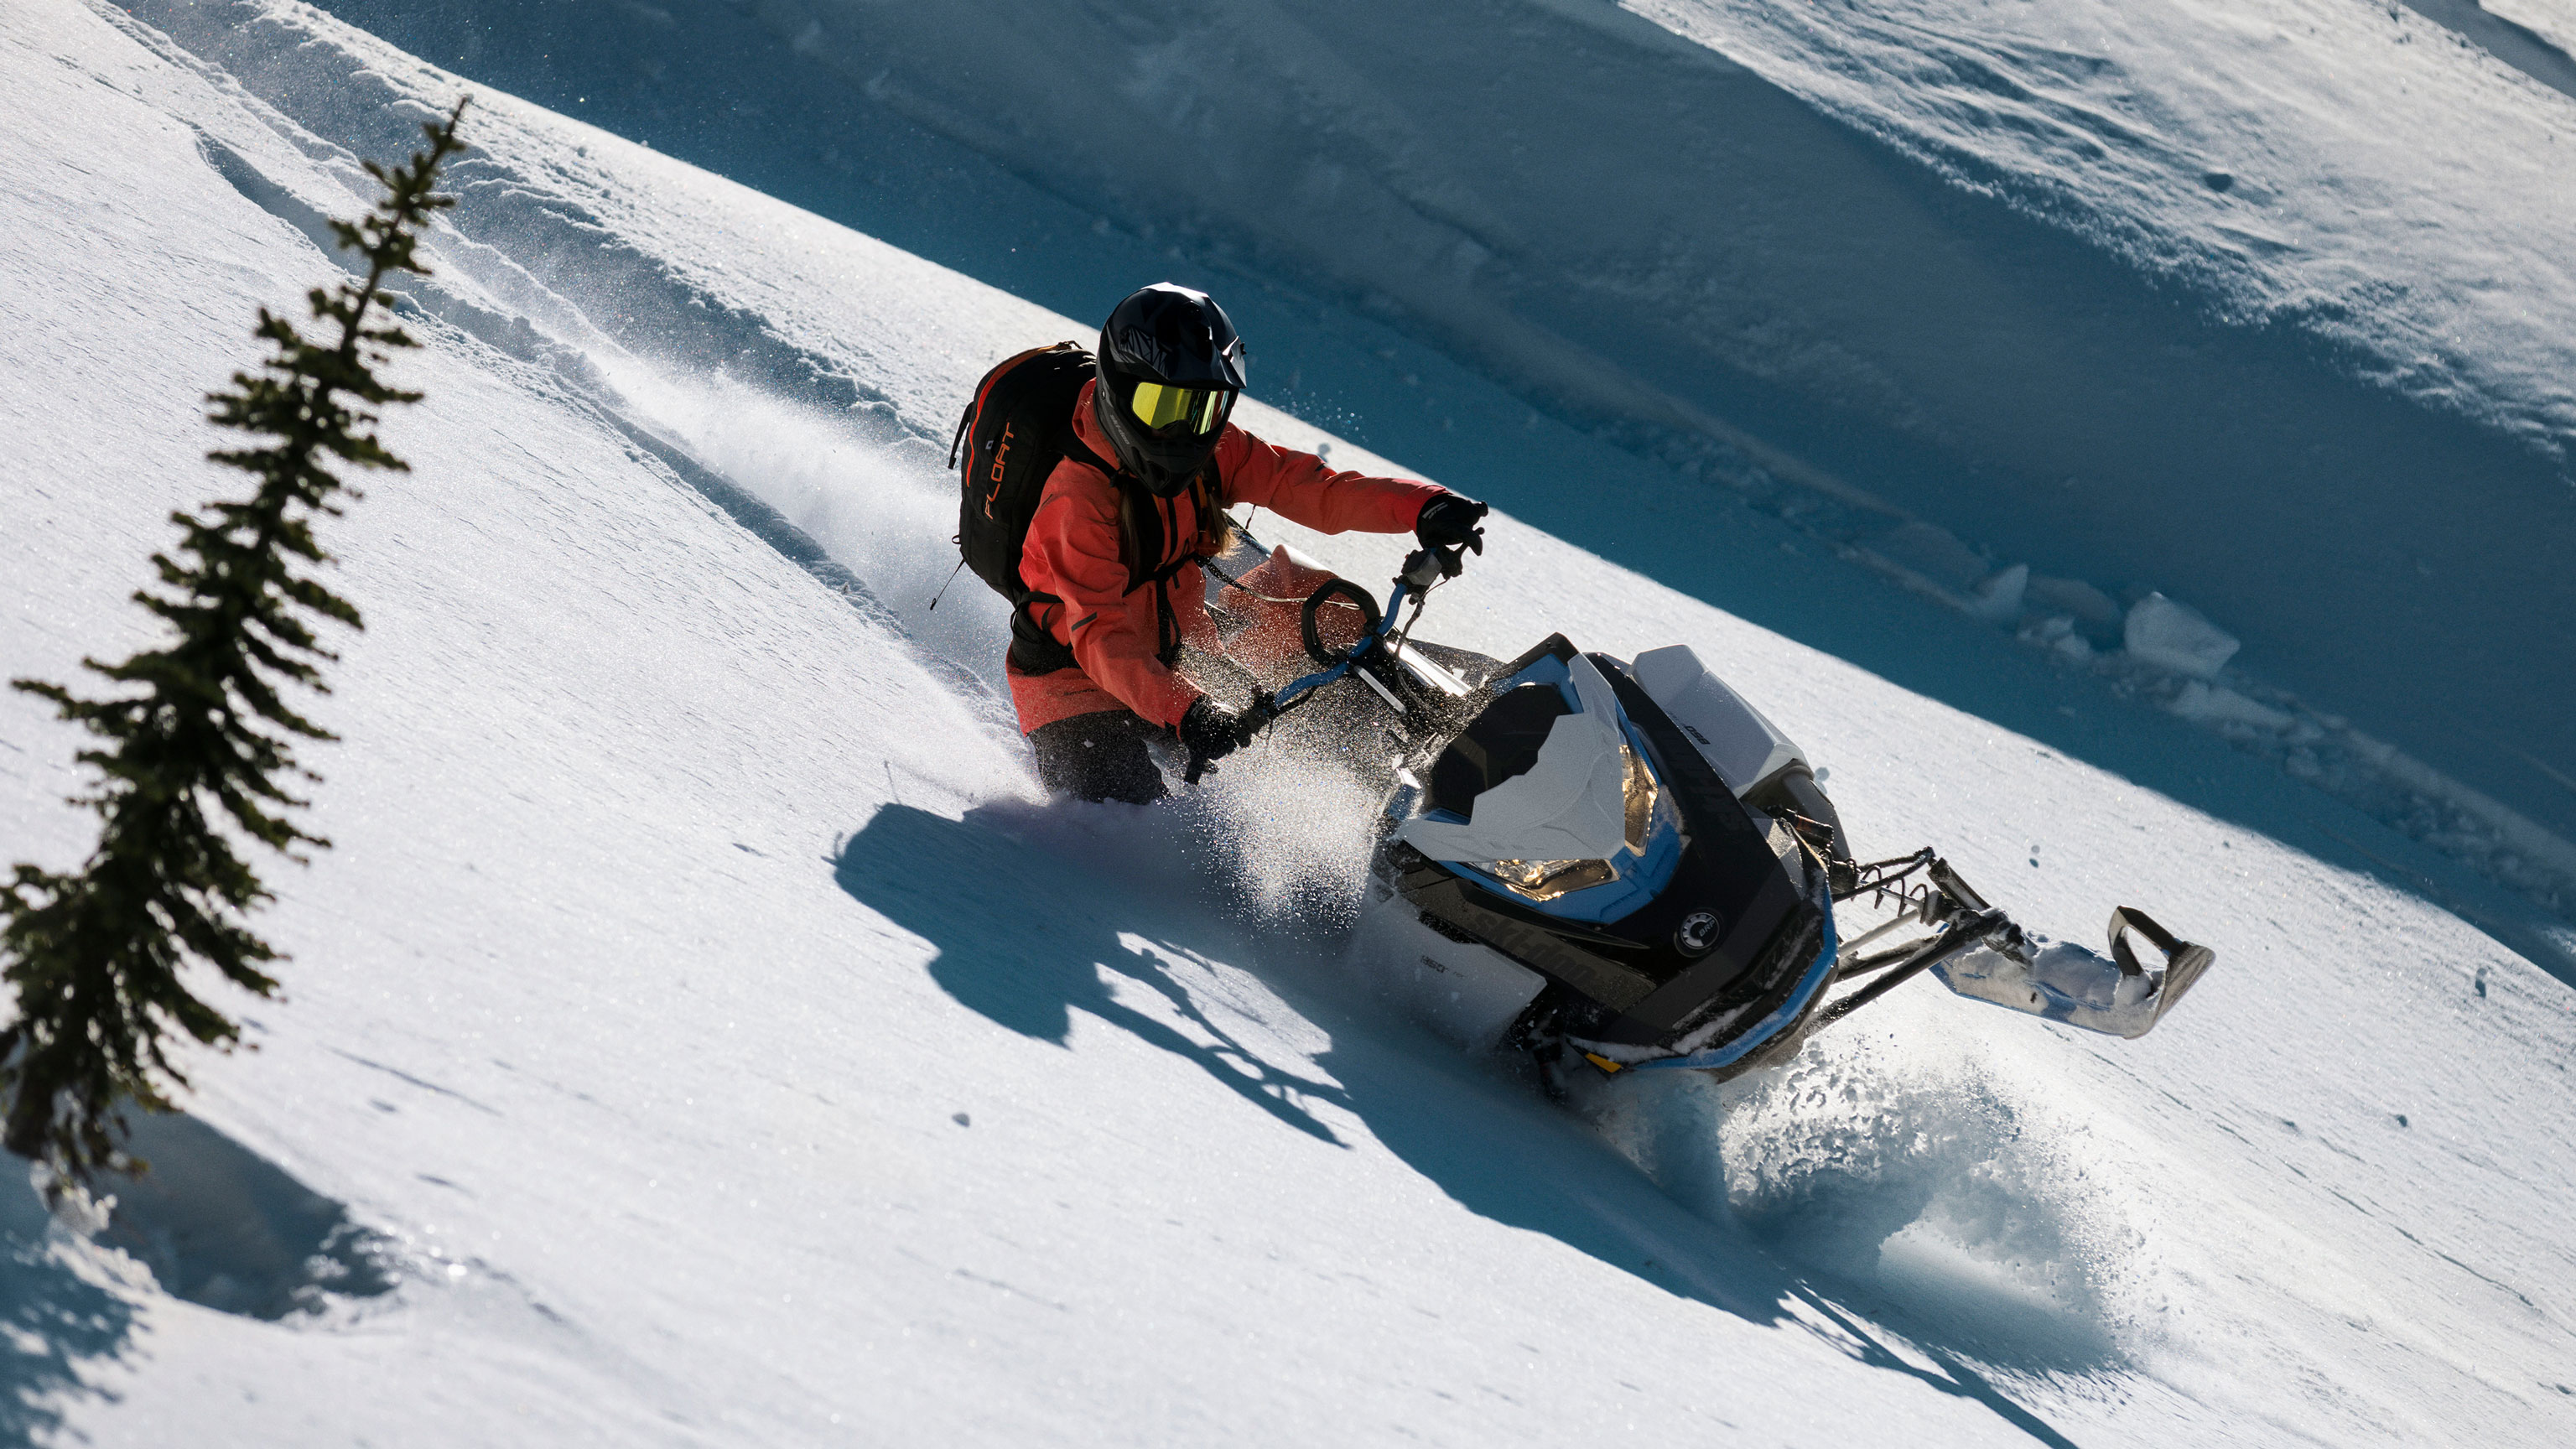 2022 Ski-Doo Summit carving in deep snow